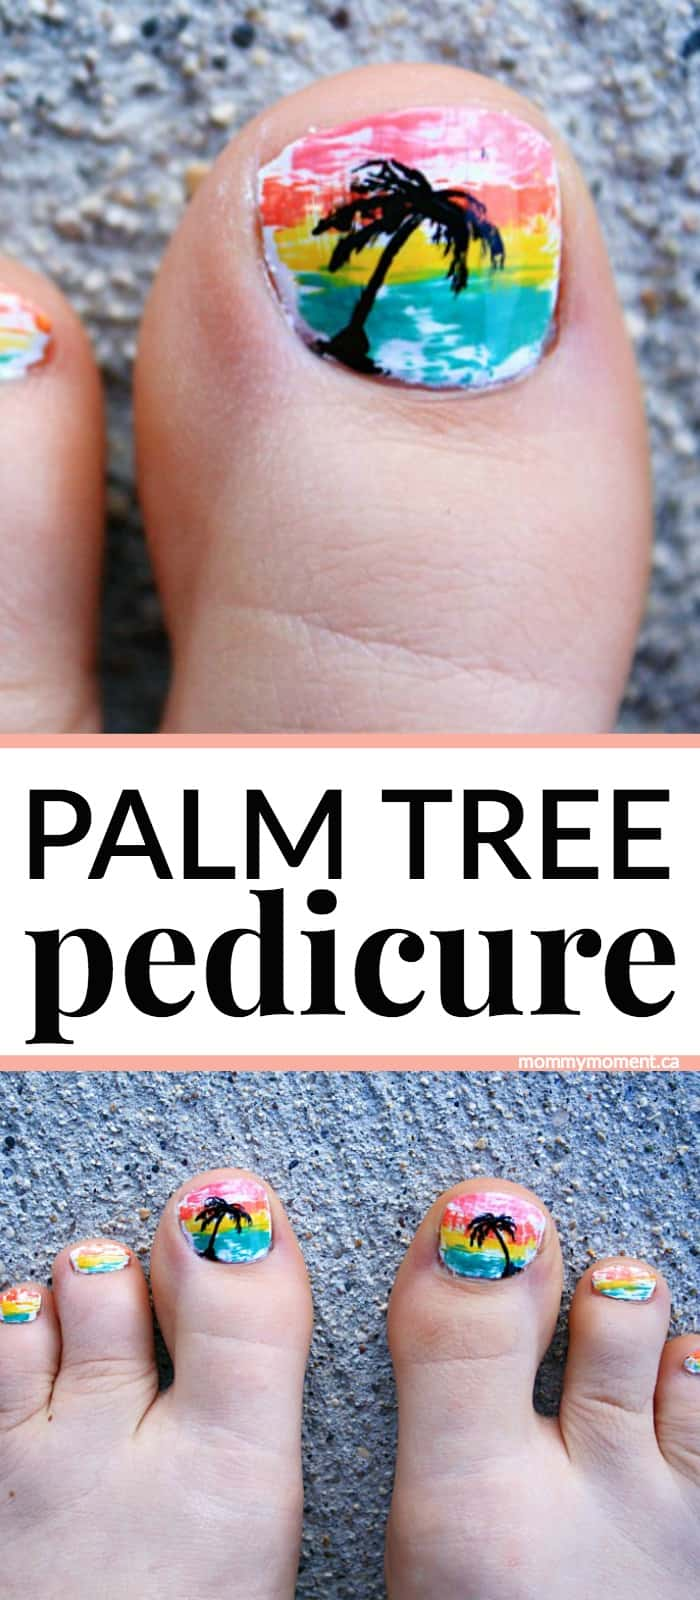 palm-tree-pedicure-mommymoment.ca